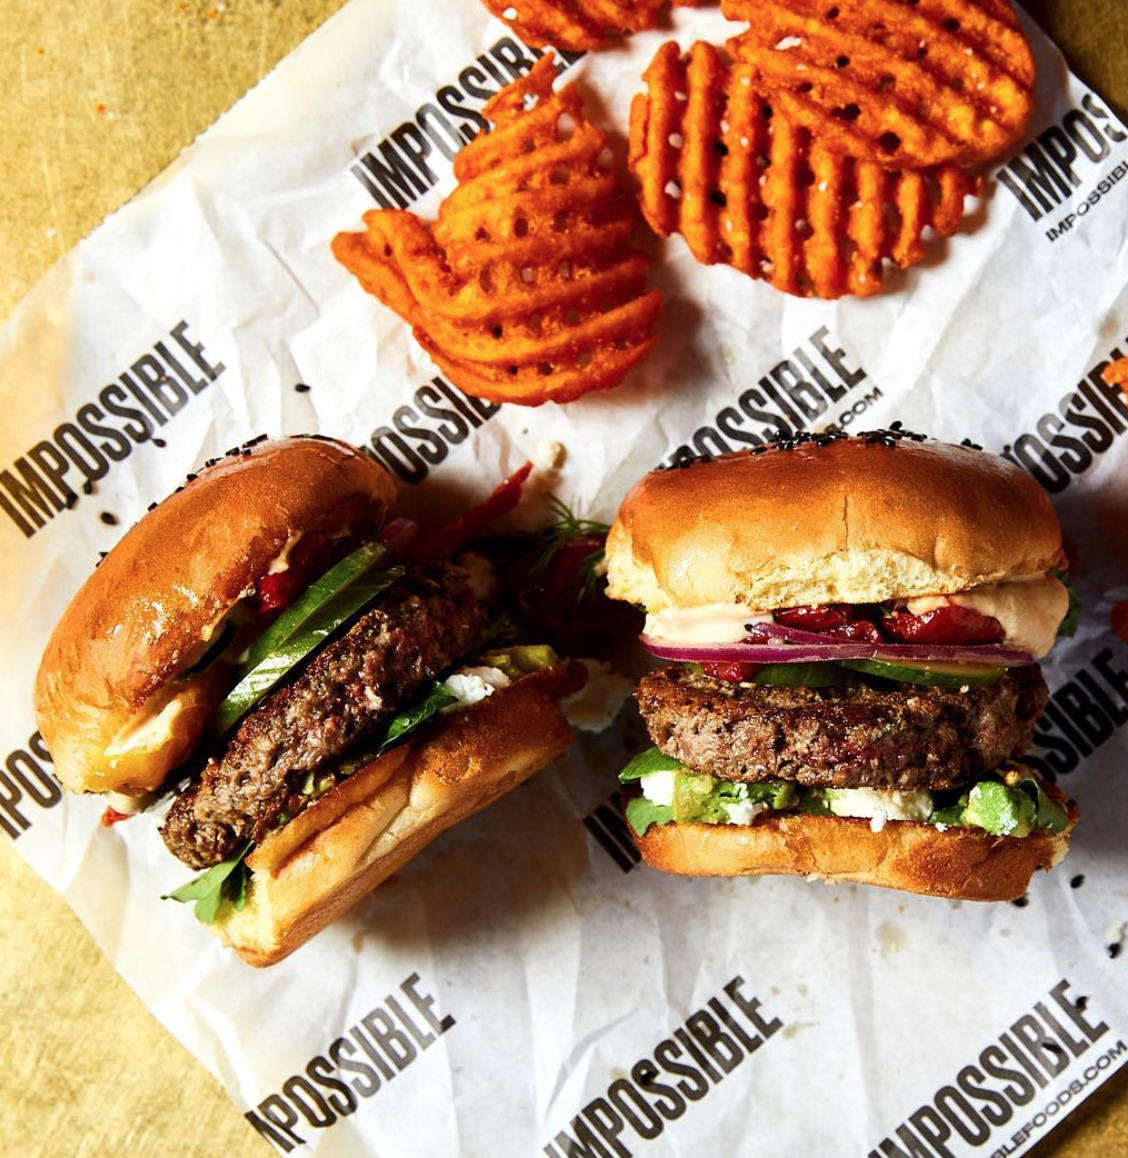 Vegan Burger Brand Impossible Foods Launches New Food Bank Program